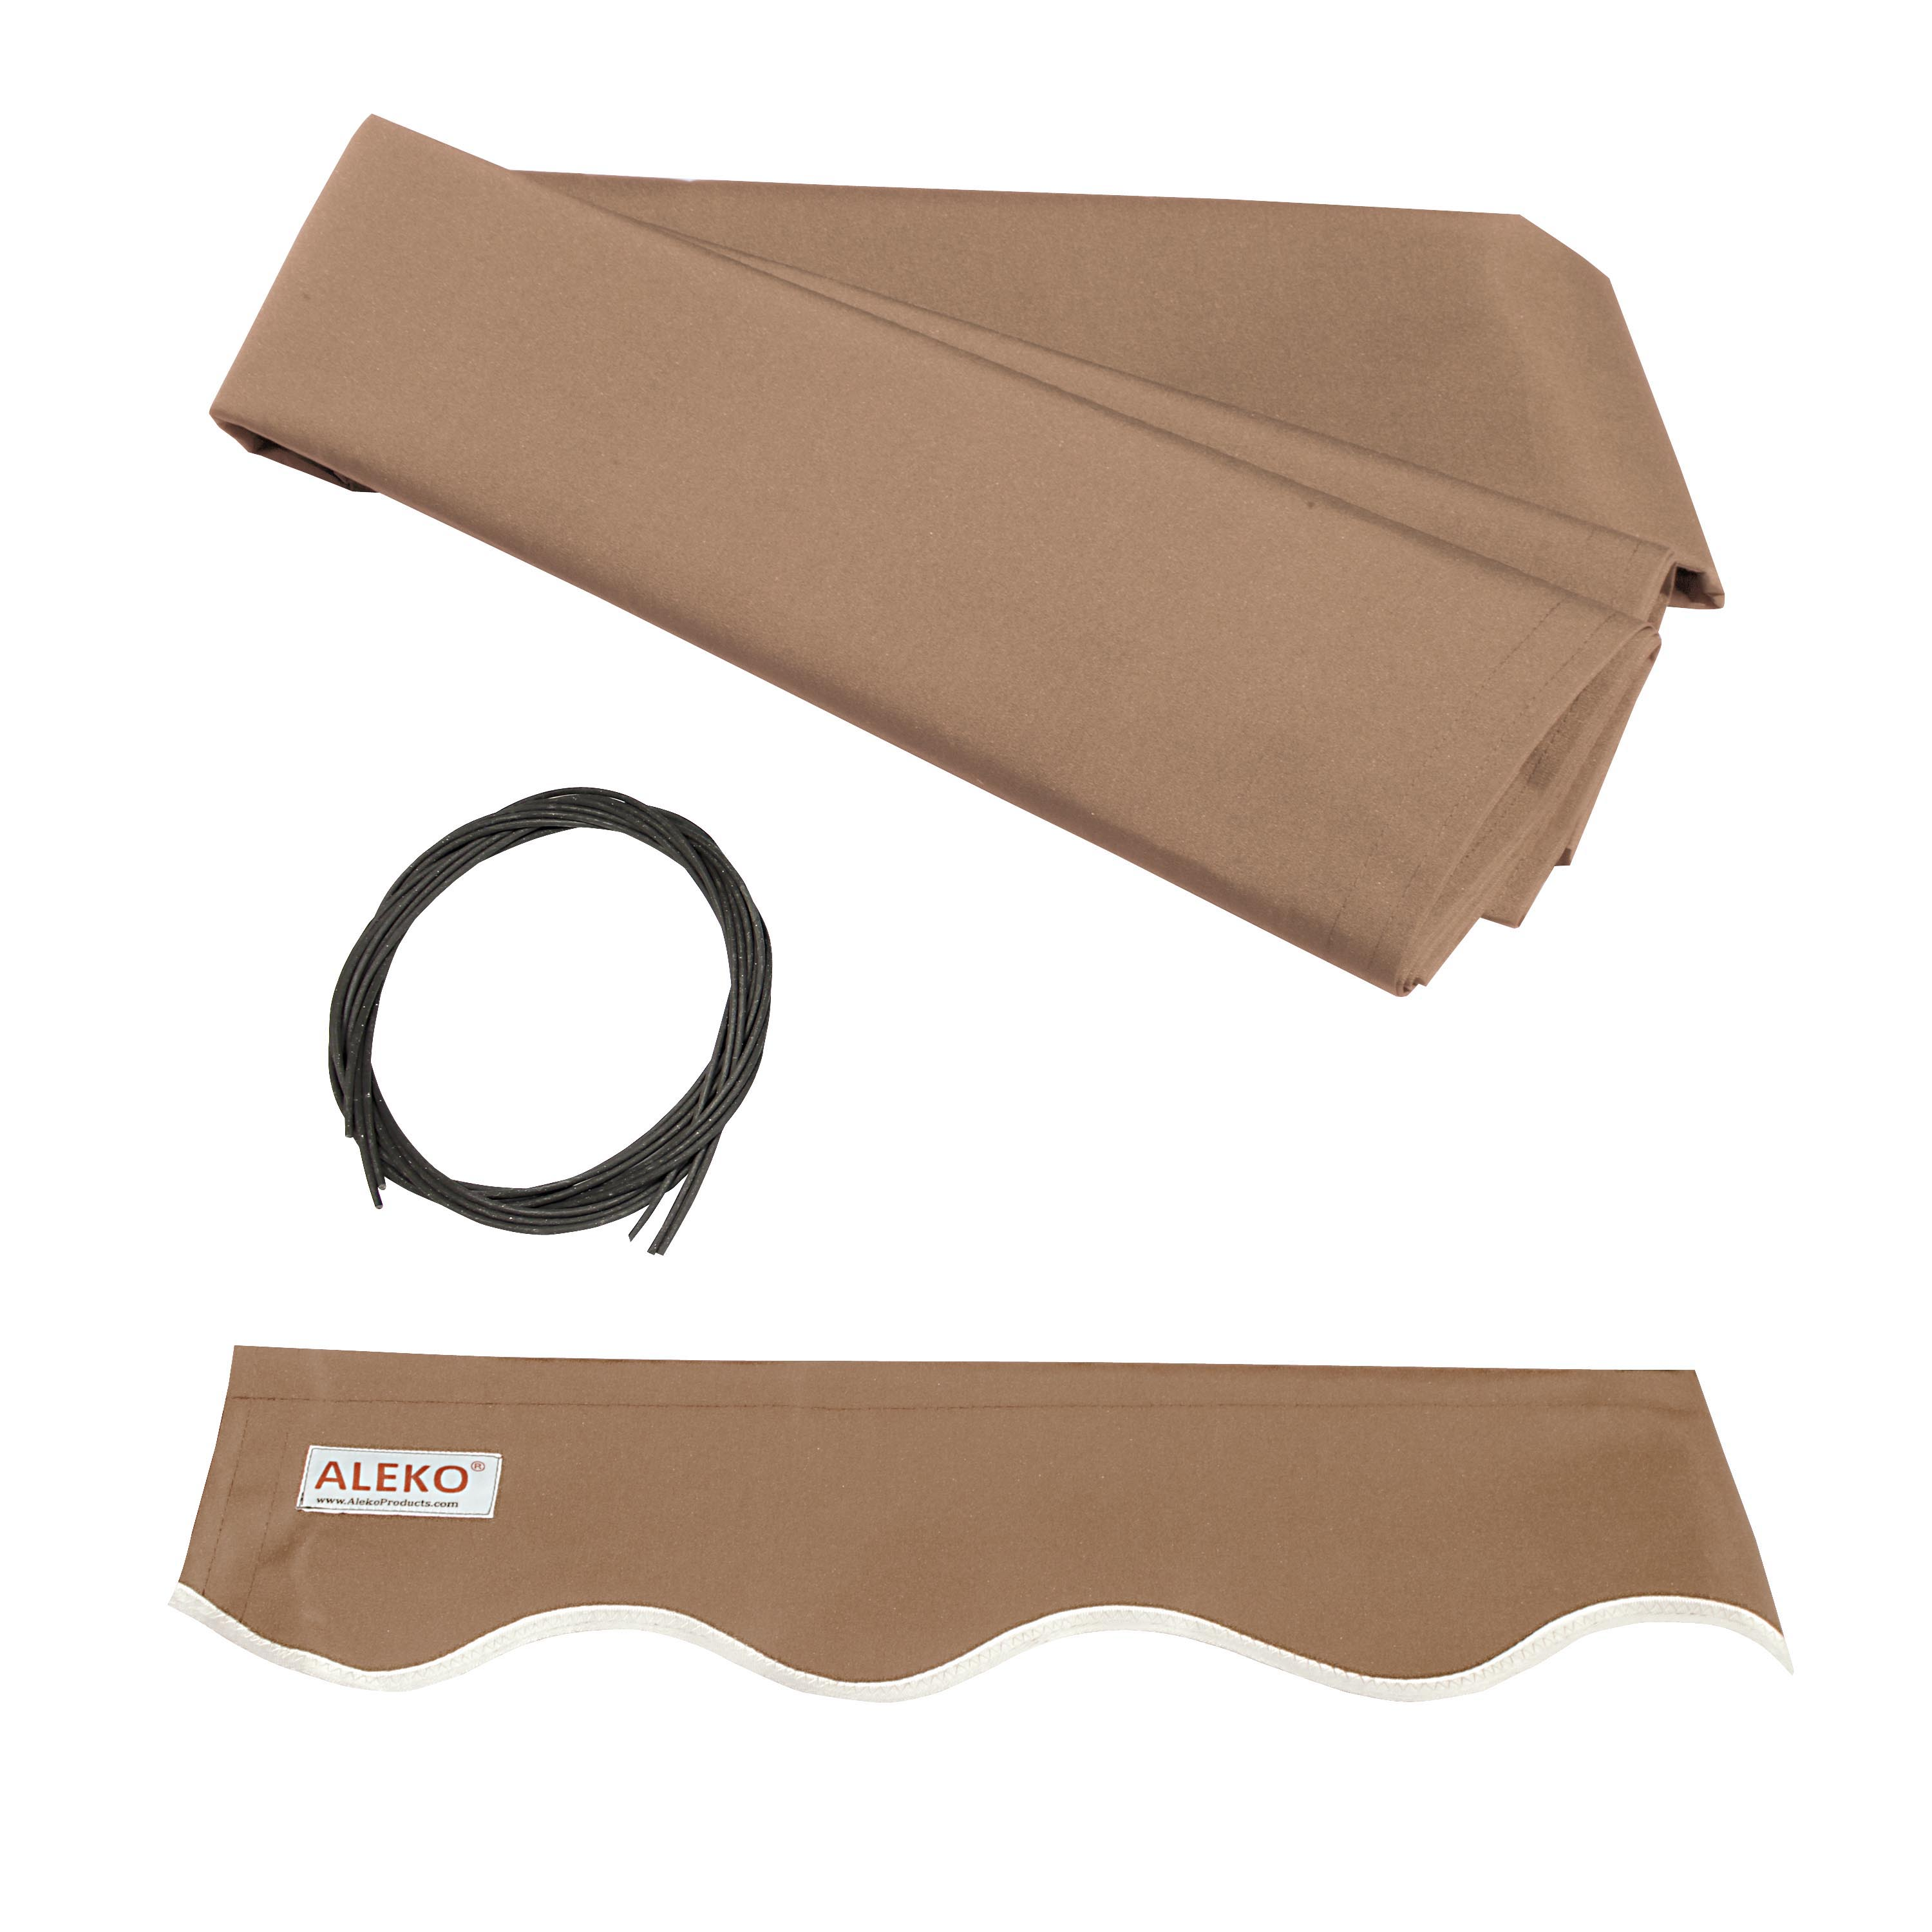 ALEKO Retractable Awning Fabric Replacement - 10x8 Feet - Sand